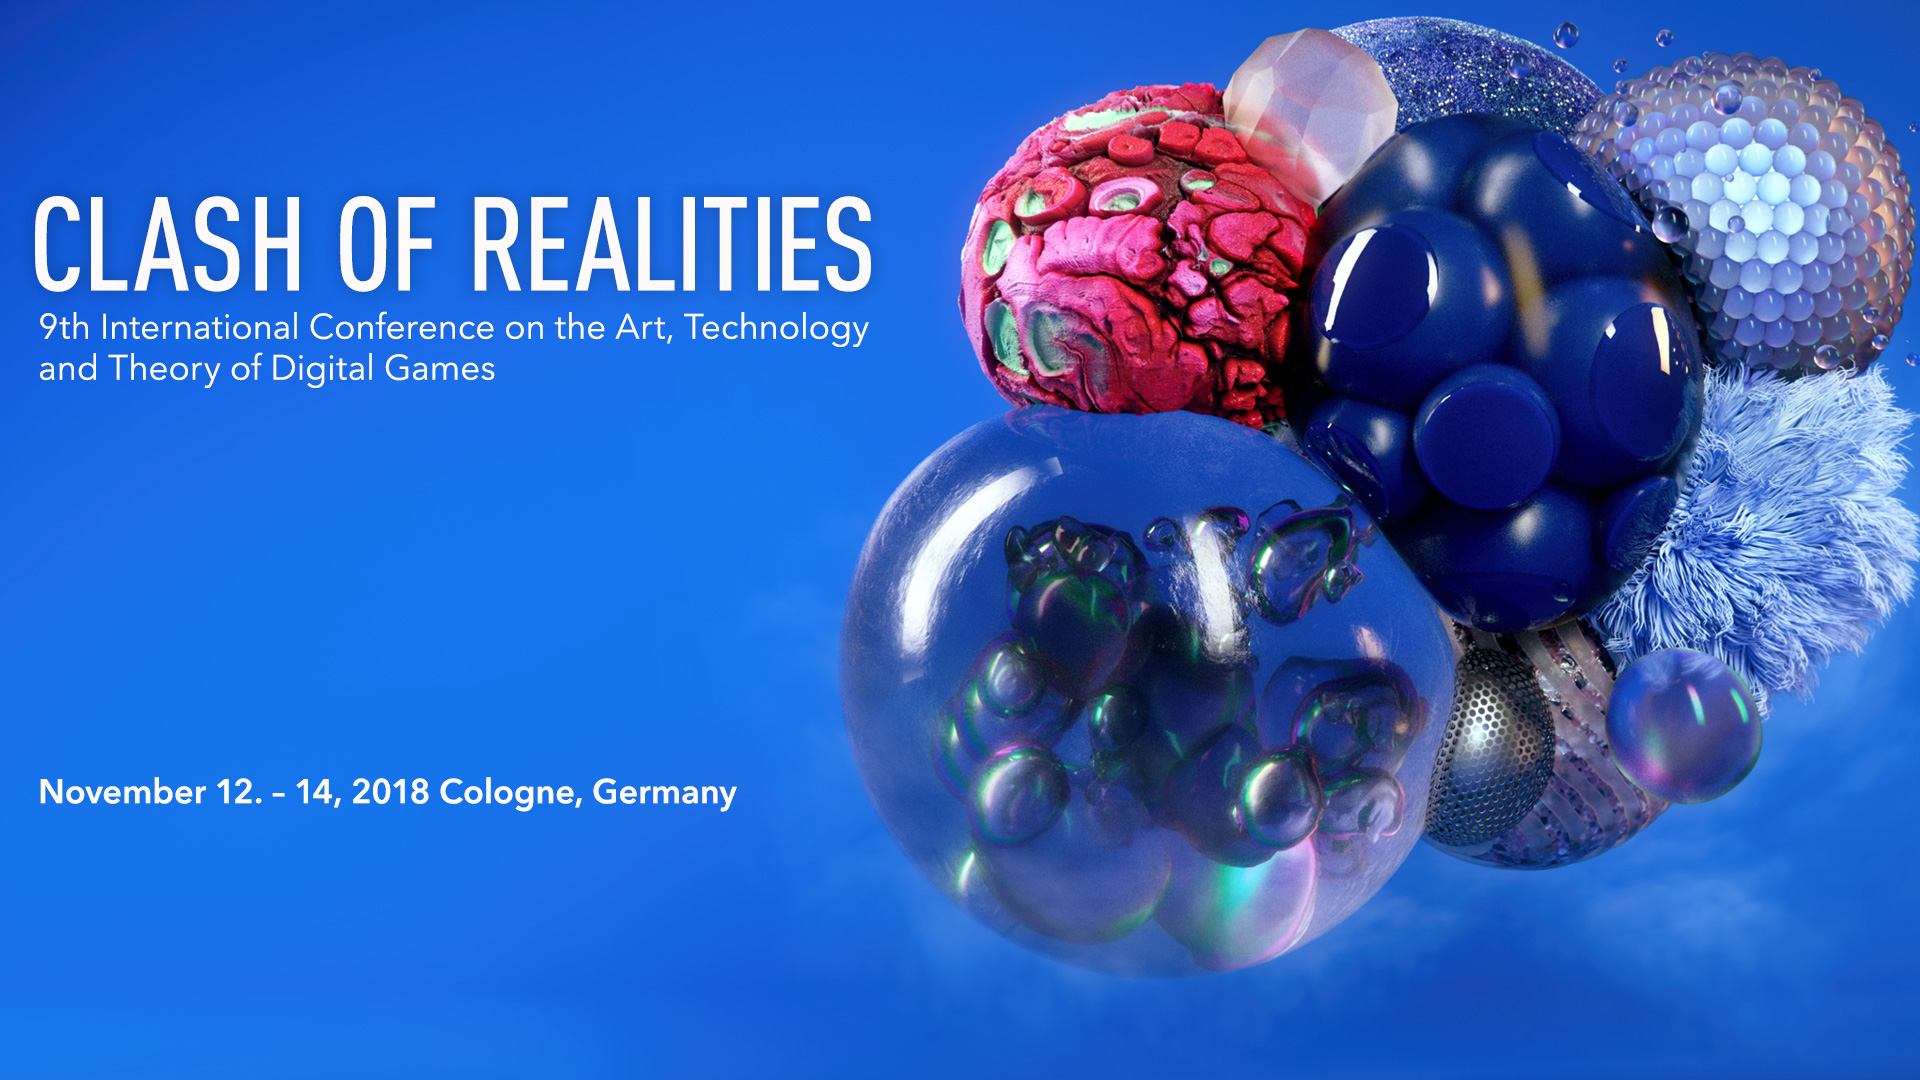 Clash of Realities Conference 2018